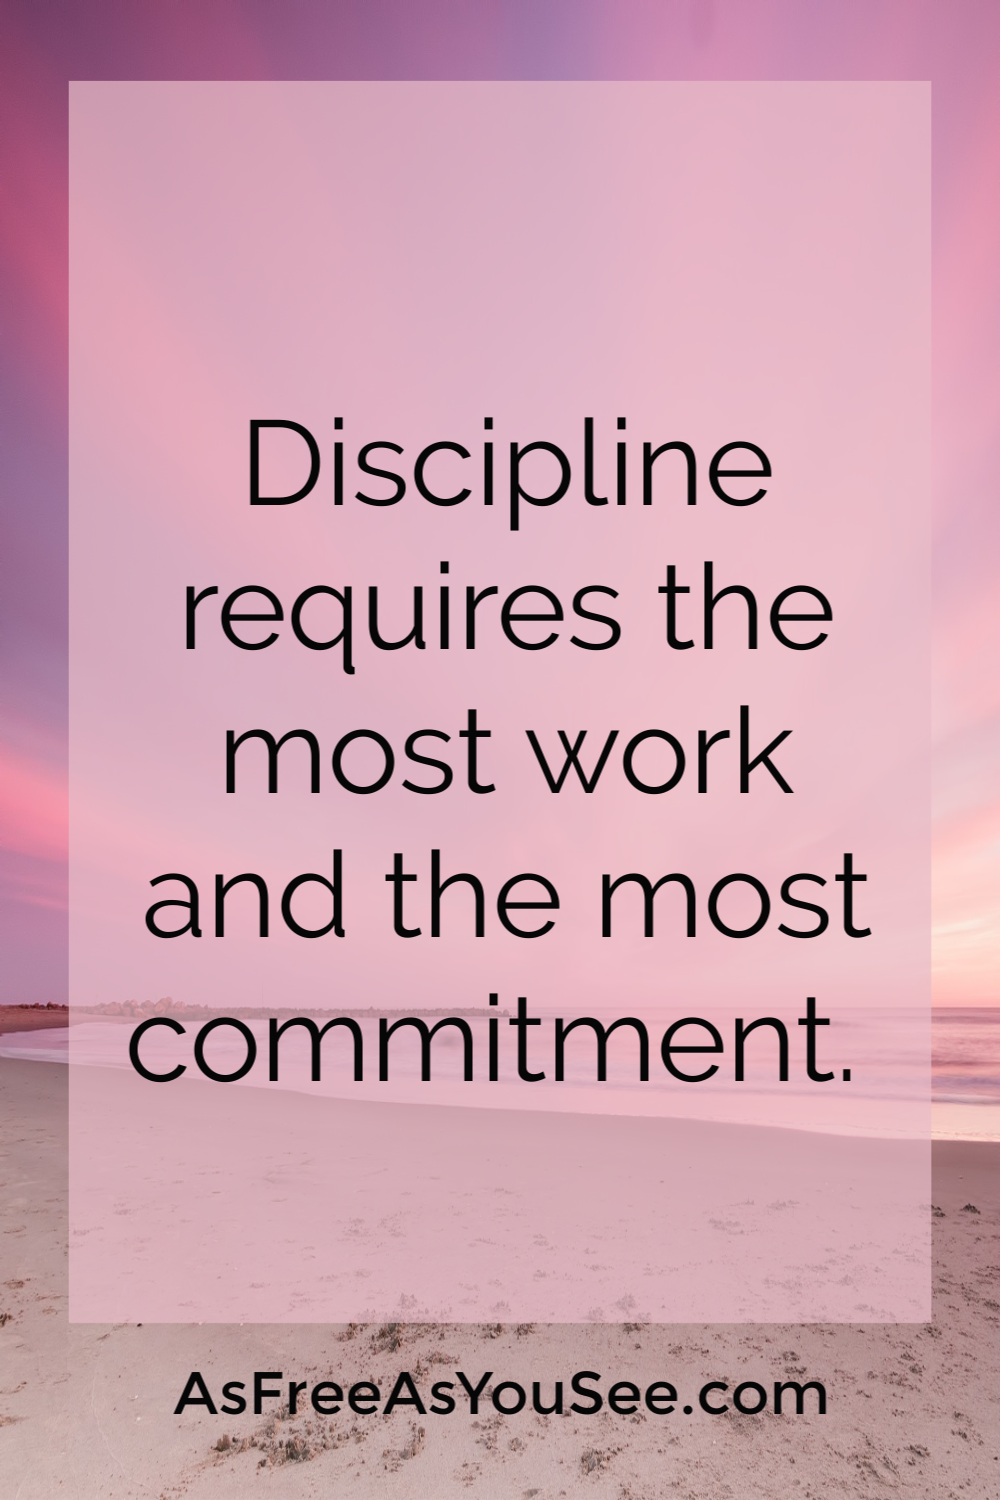 5 Tips to Get & Stay Disciplined